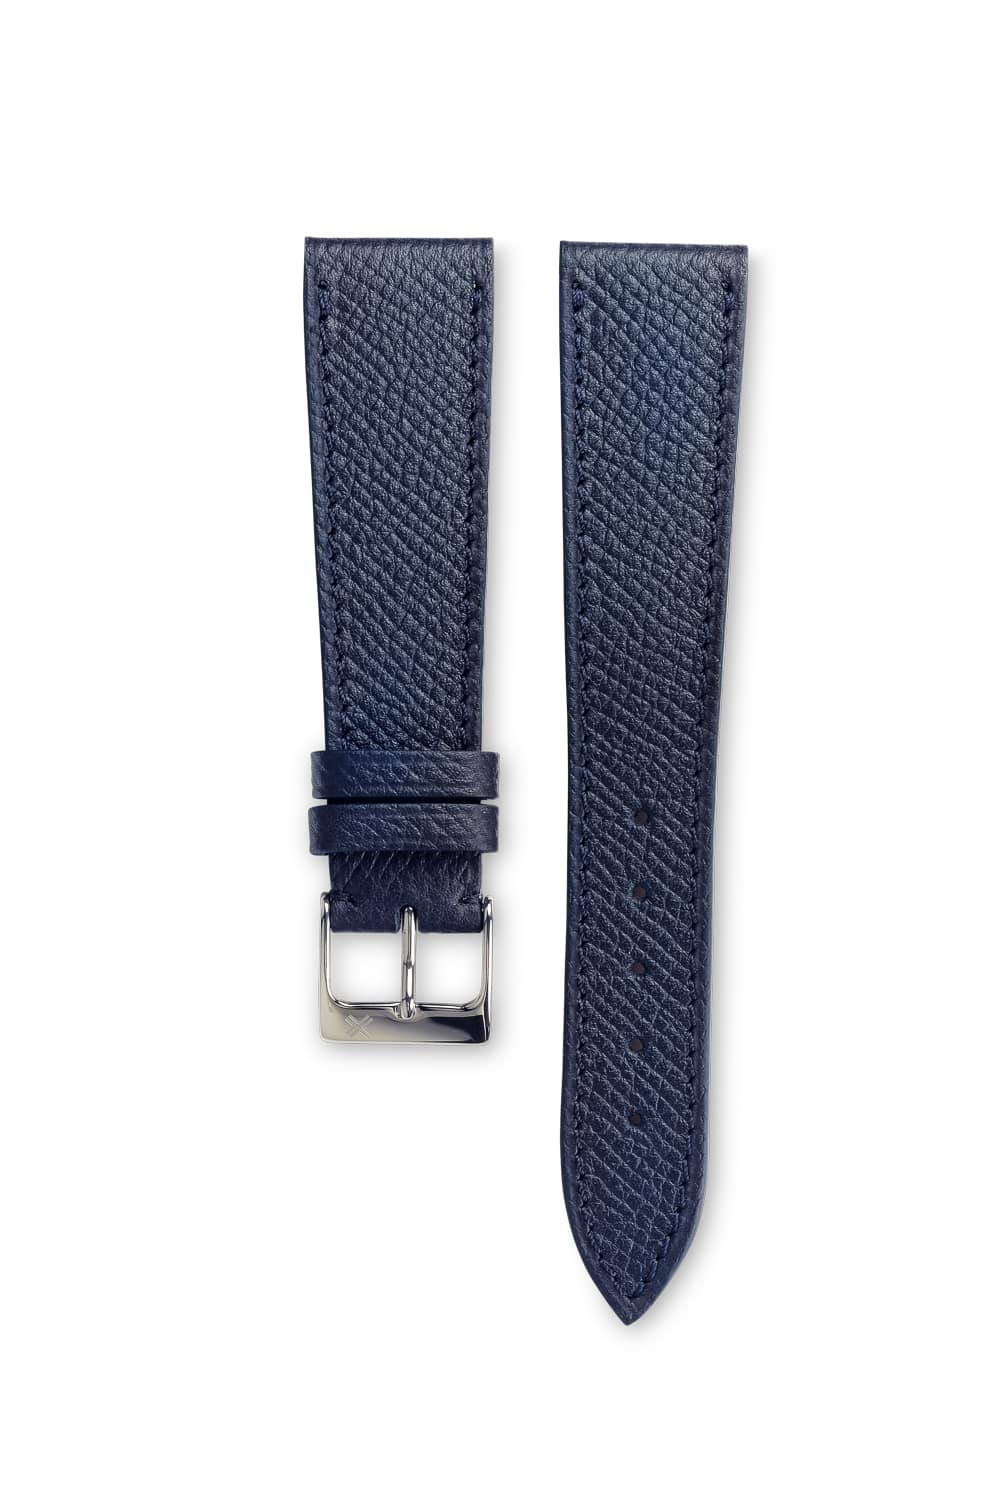 Grained Navy blue leather watch strap - tone on tone stitching - LUGS brand